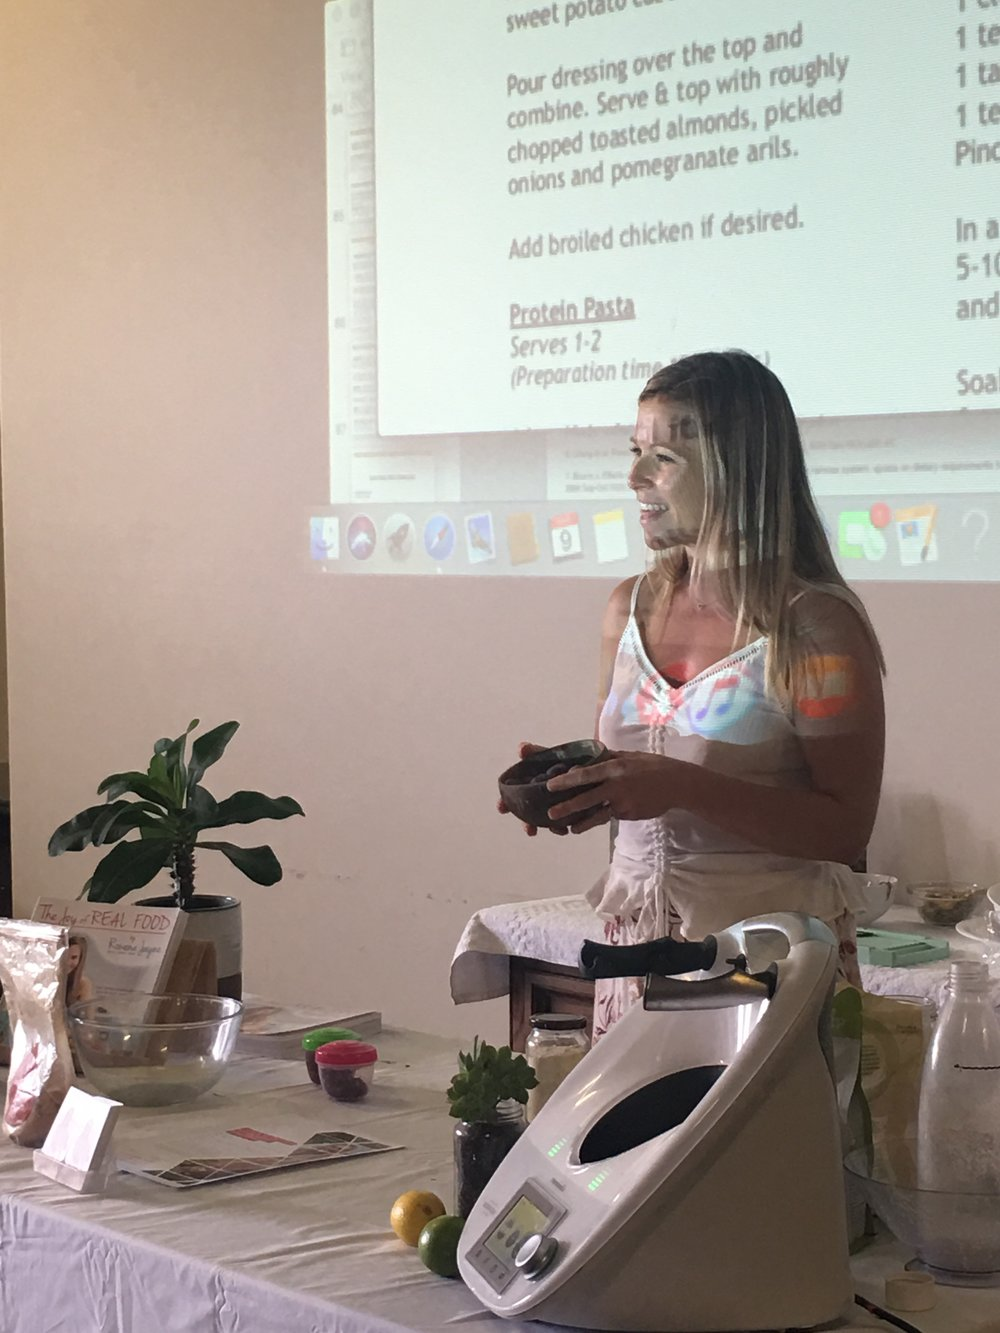 Sharing the power of plants and simple recipes at a nutrition workshop hosted by my local yoga studio #bliss